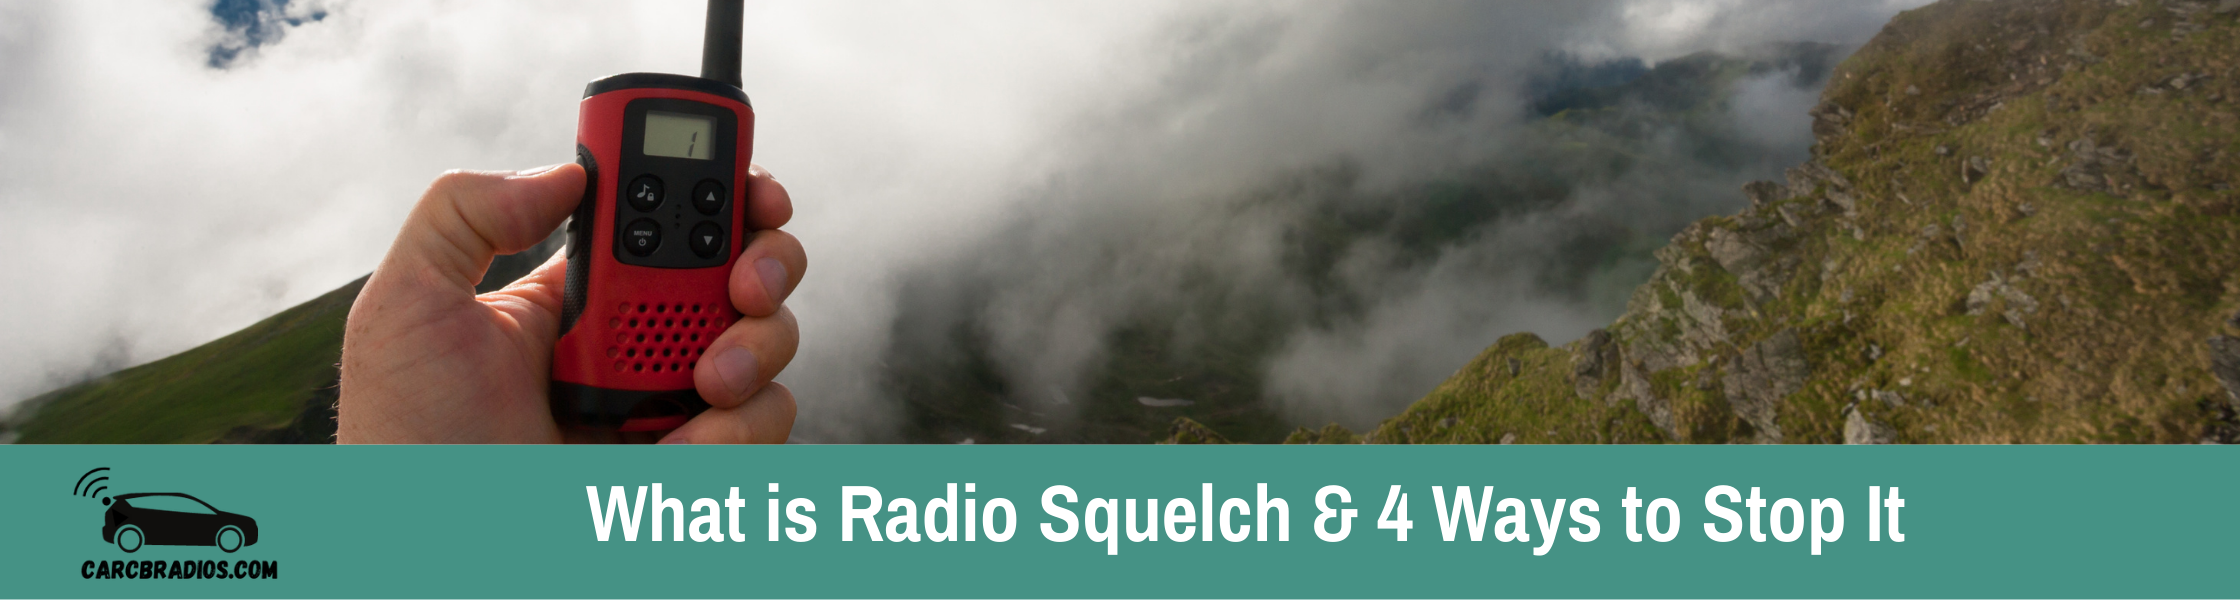 What is Radio Squelch: Squelch is the noise reduction system of a Walkie-talkie. The squelch level is used to control unwanted background noise and prevent false triggering from noise when no one is transmitting.